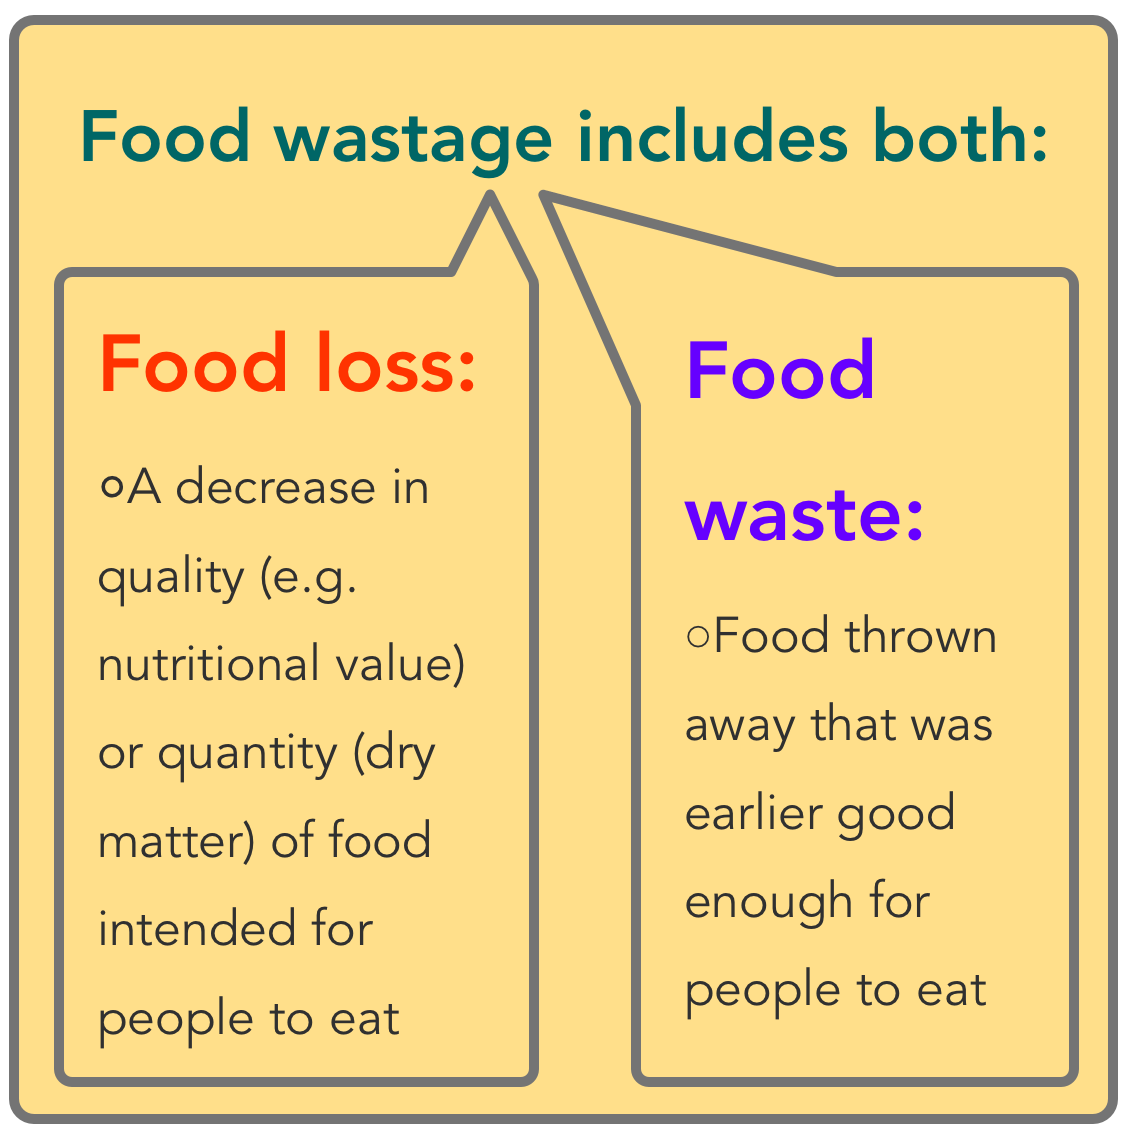 definitions of food loss, waste and wastage from FAO